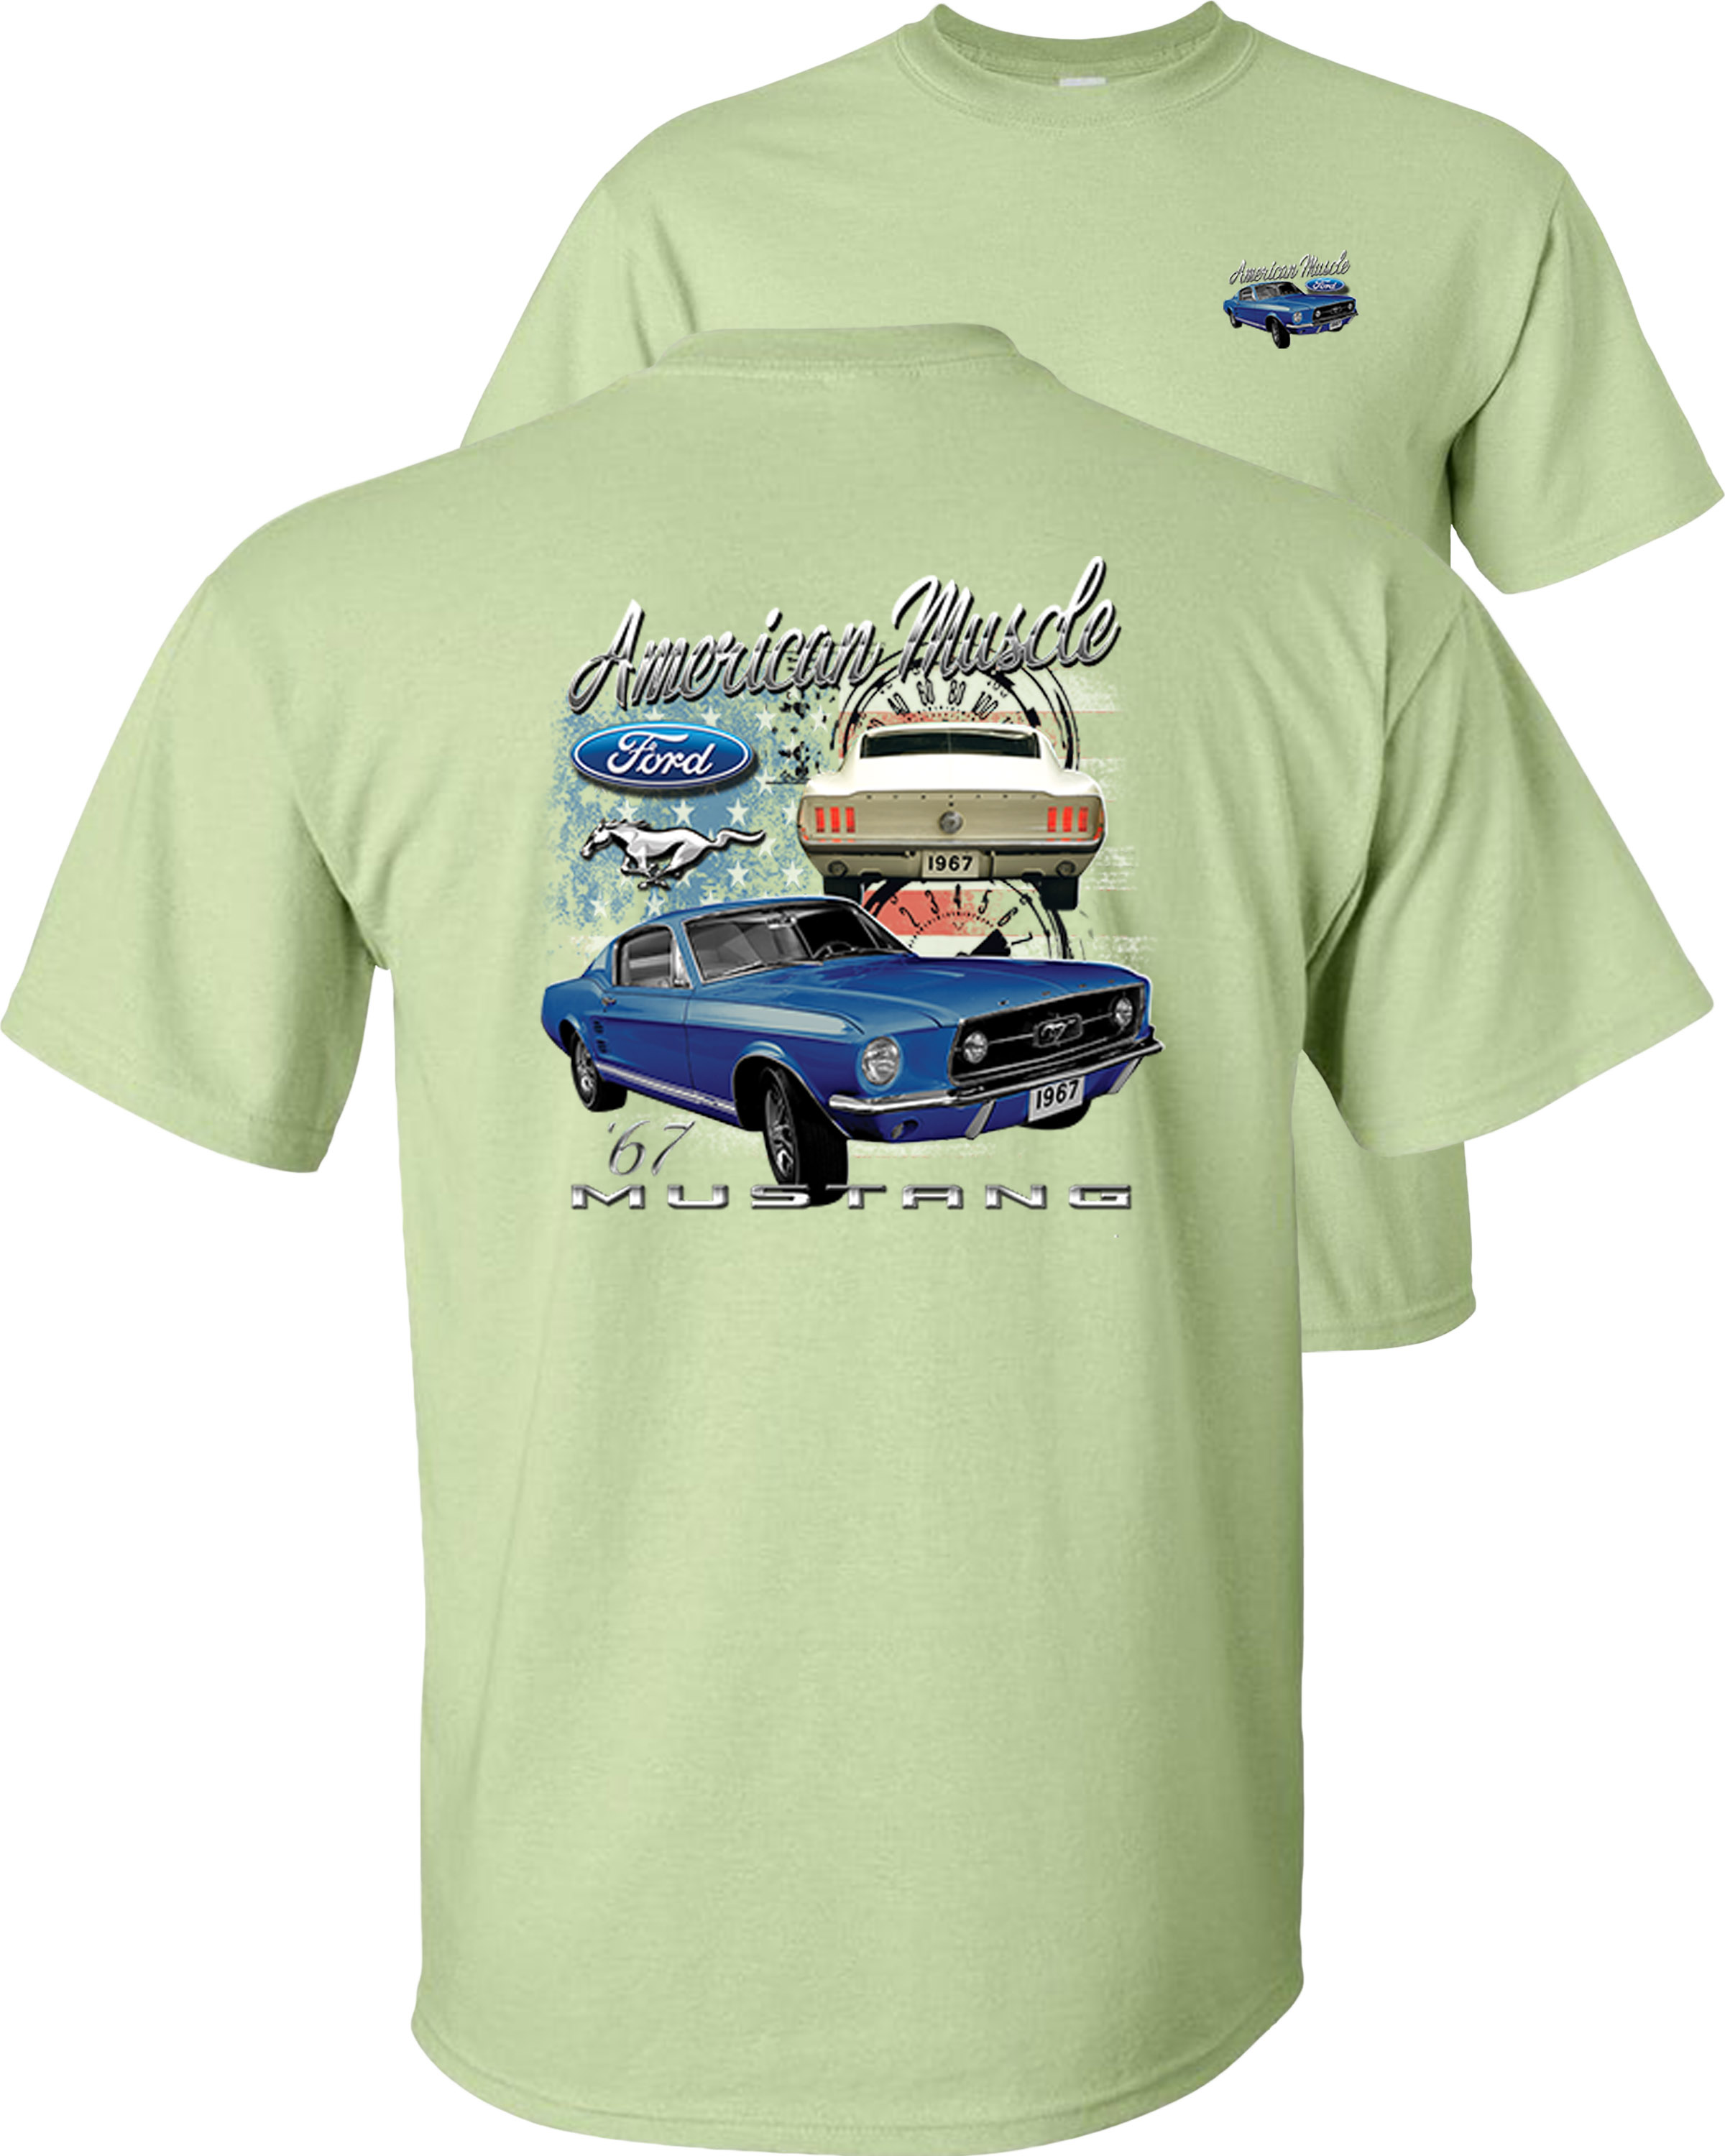 Ford Mustand The Legend Lives Logo Youth T-Shirt Classic Muscle Cars Kids Tee